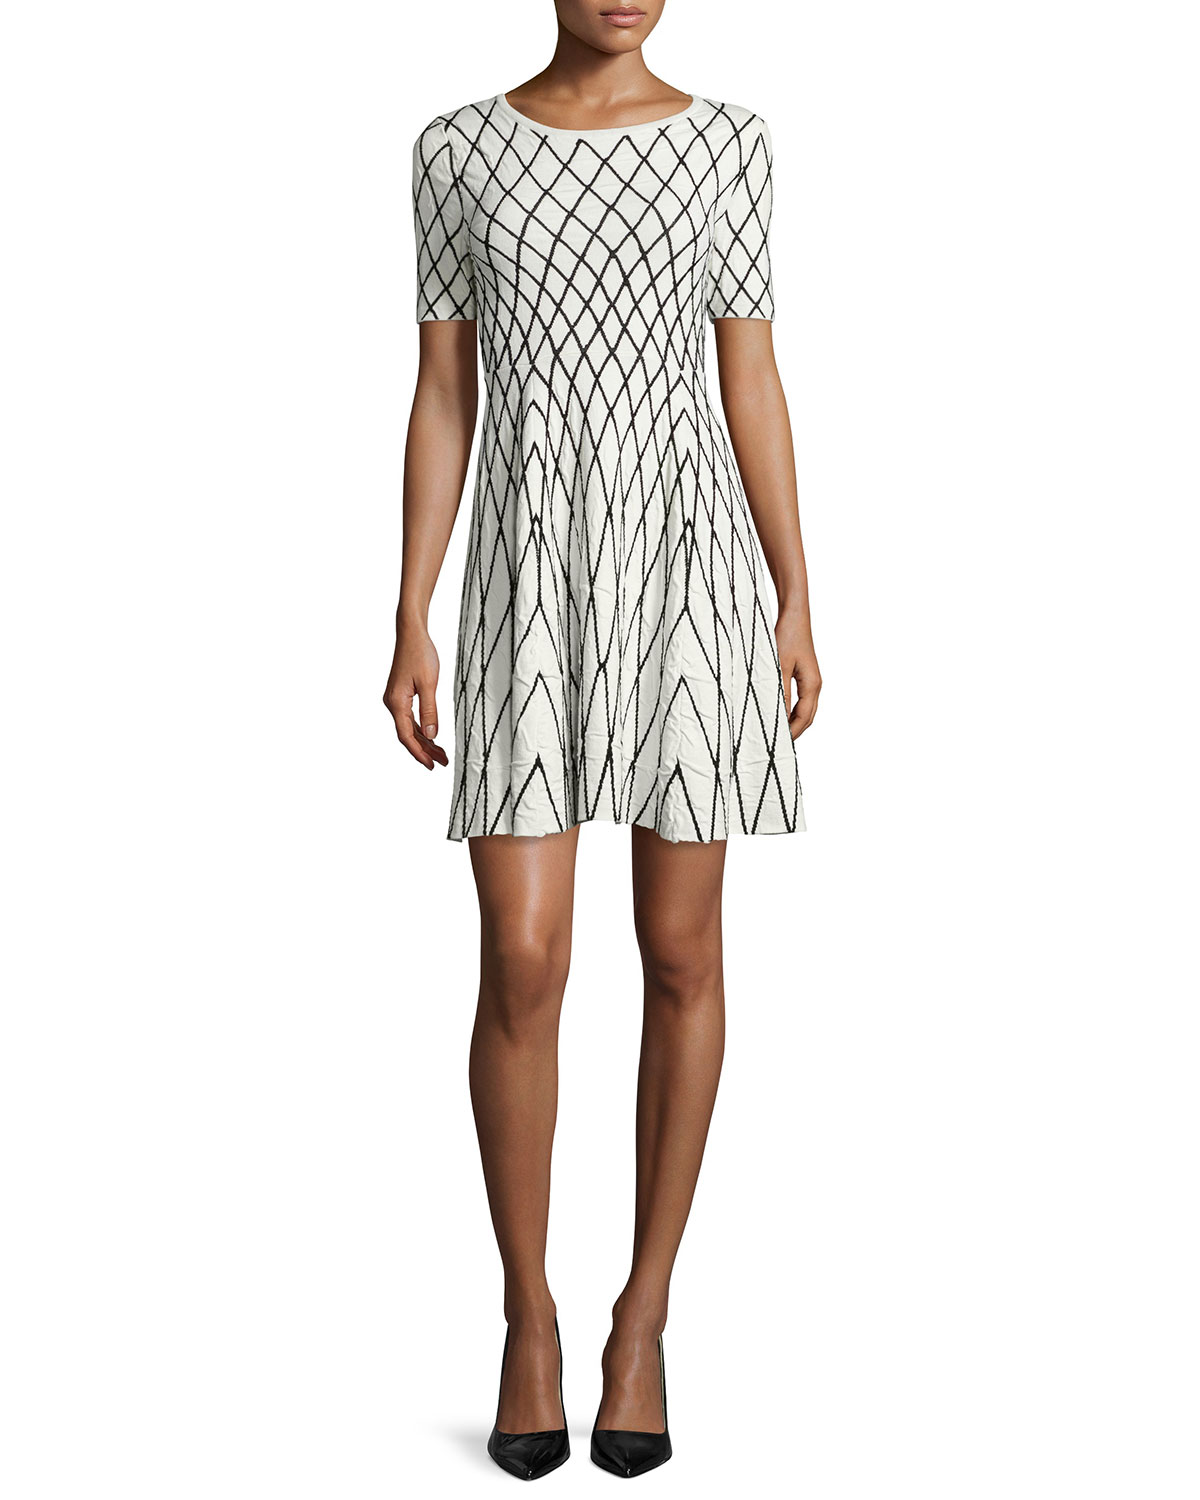 Short-Sleeve Geometric Jacquard Dress, Size: LARGE, White - Milly